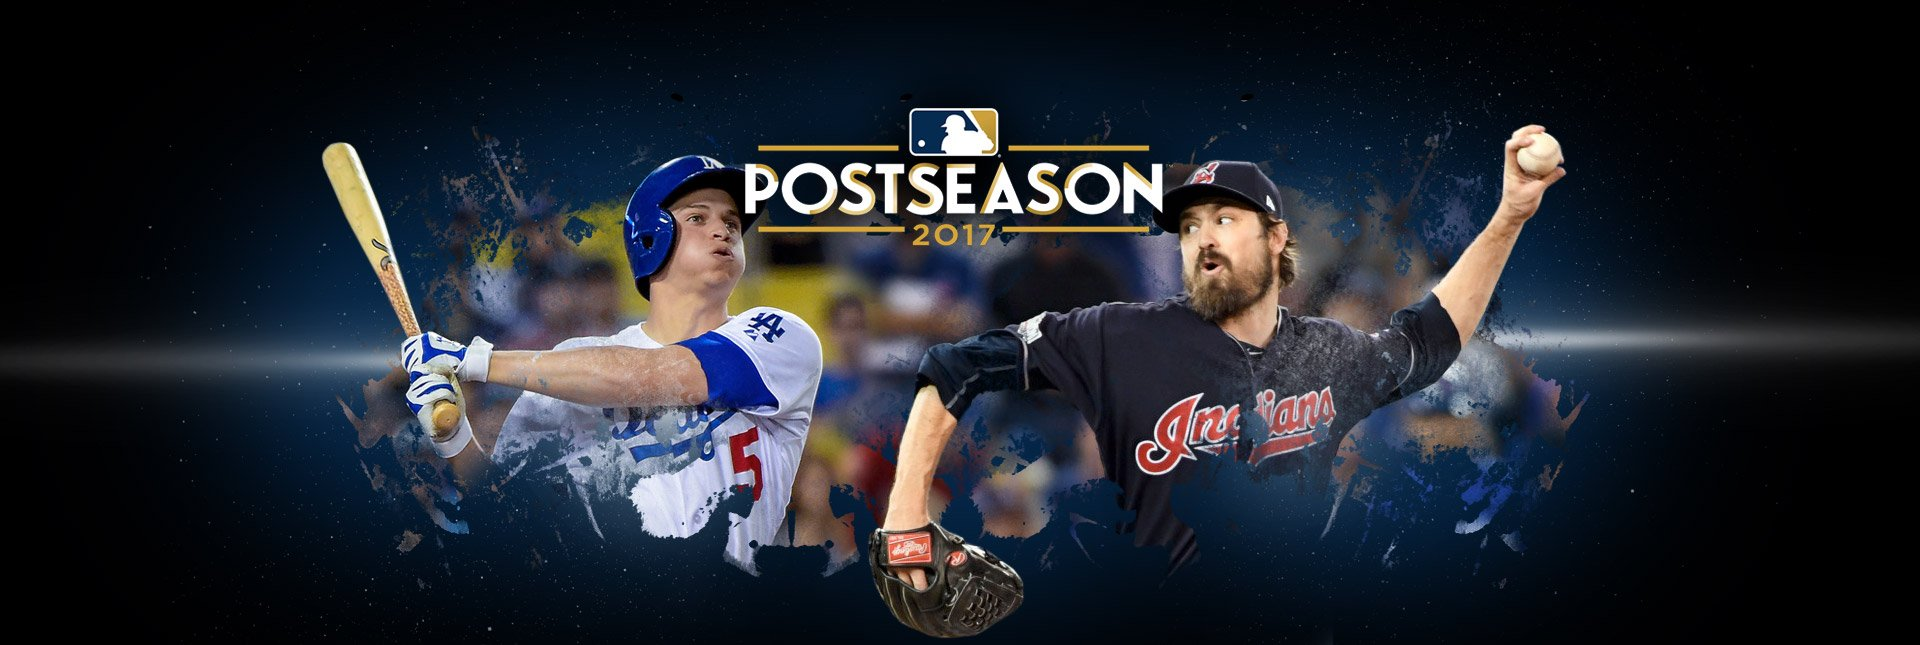 MLB Postseason